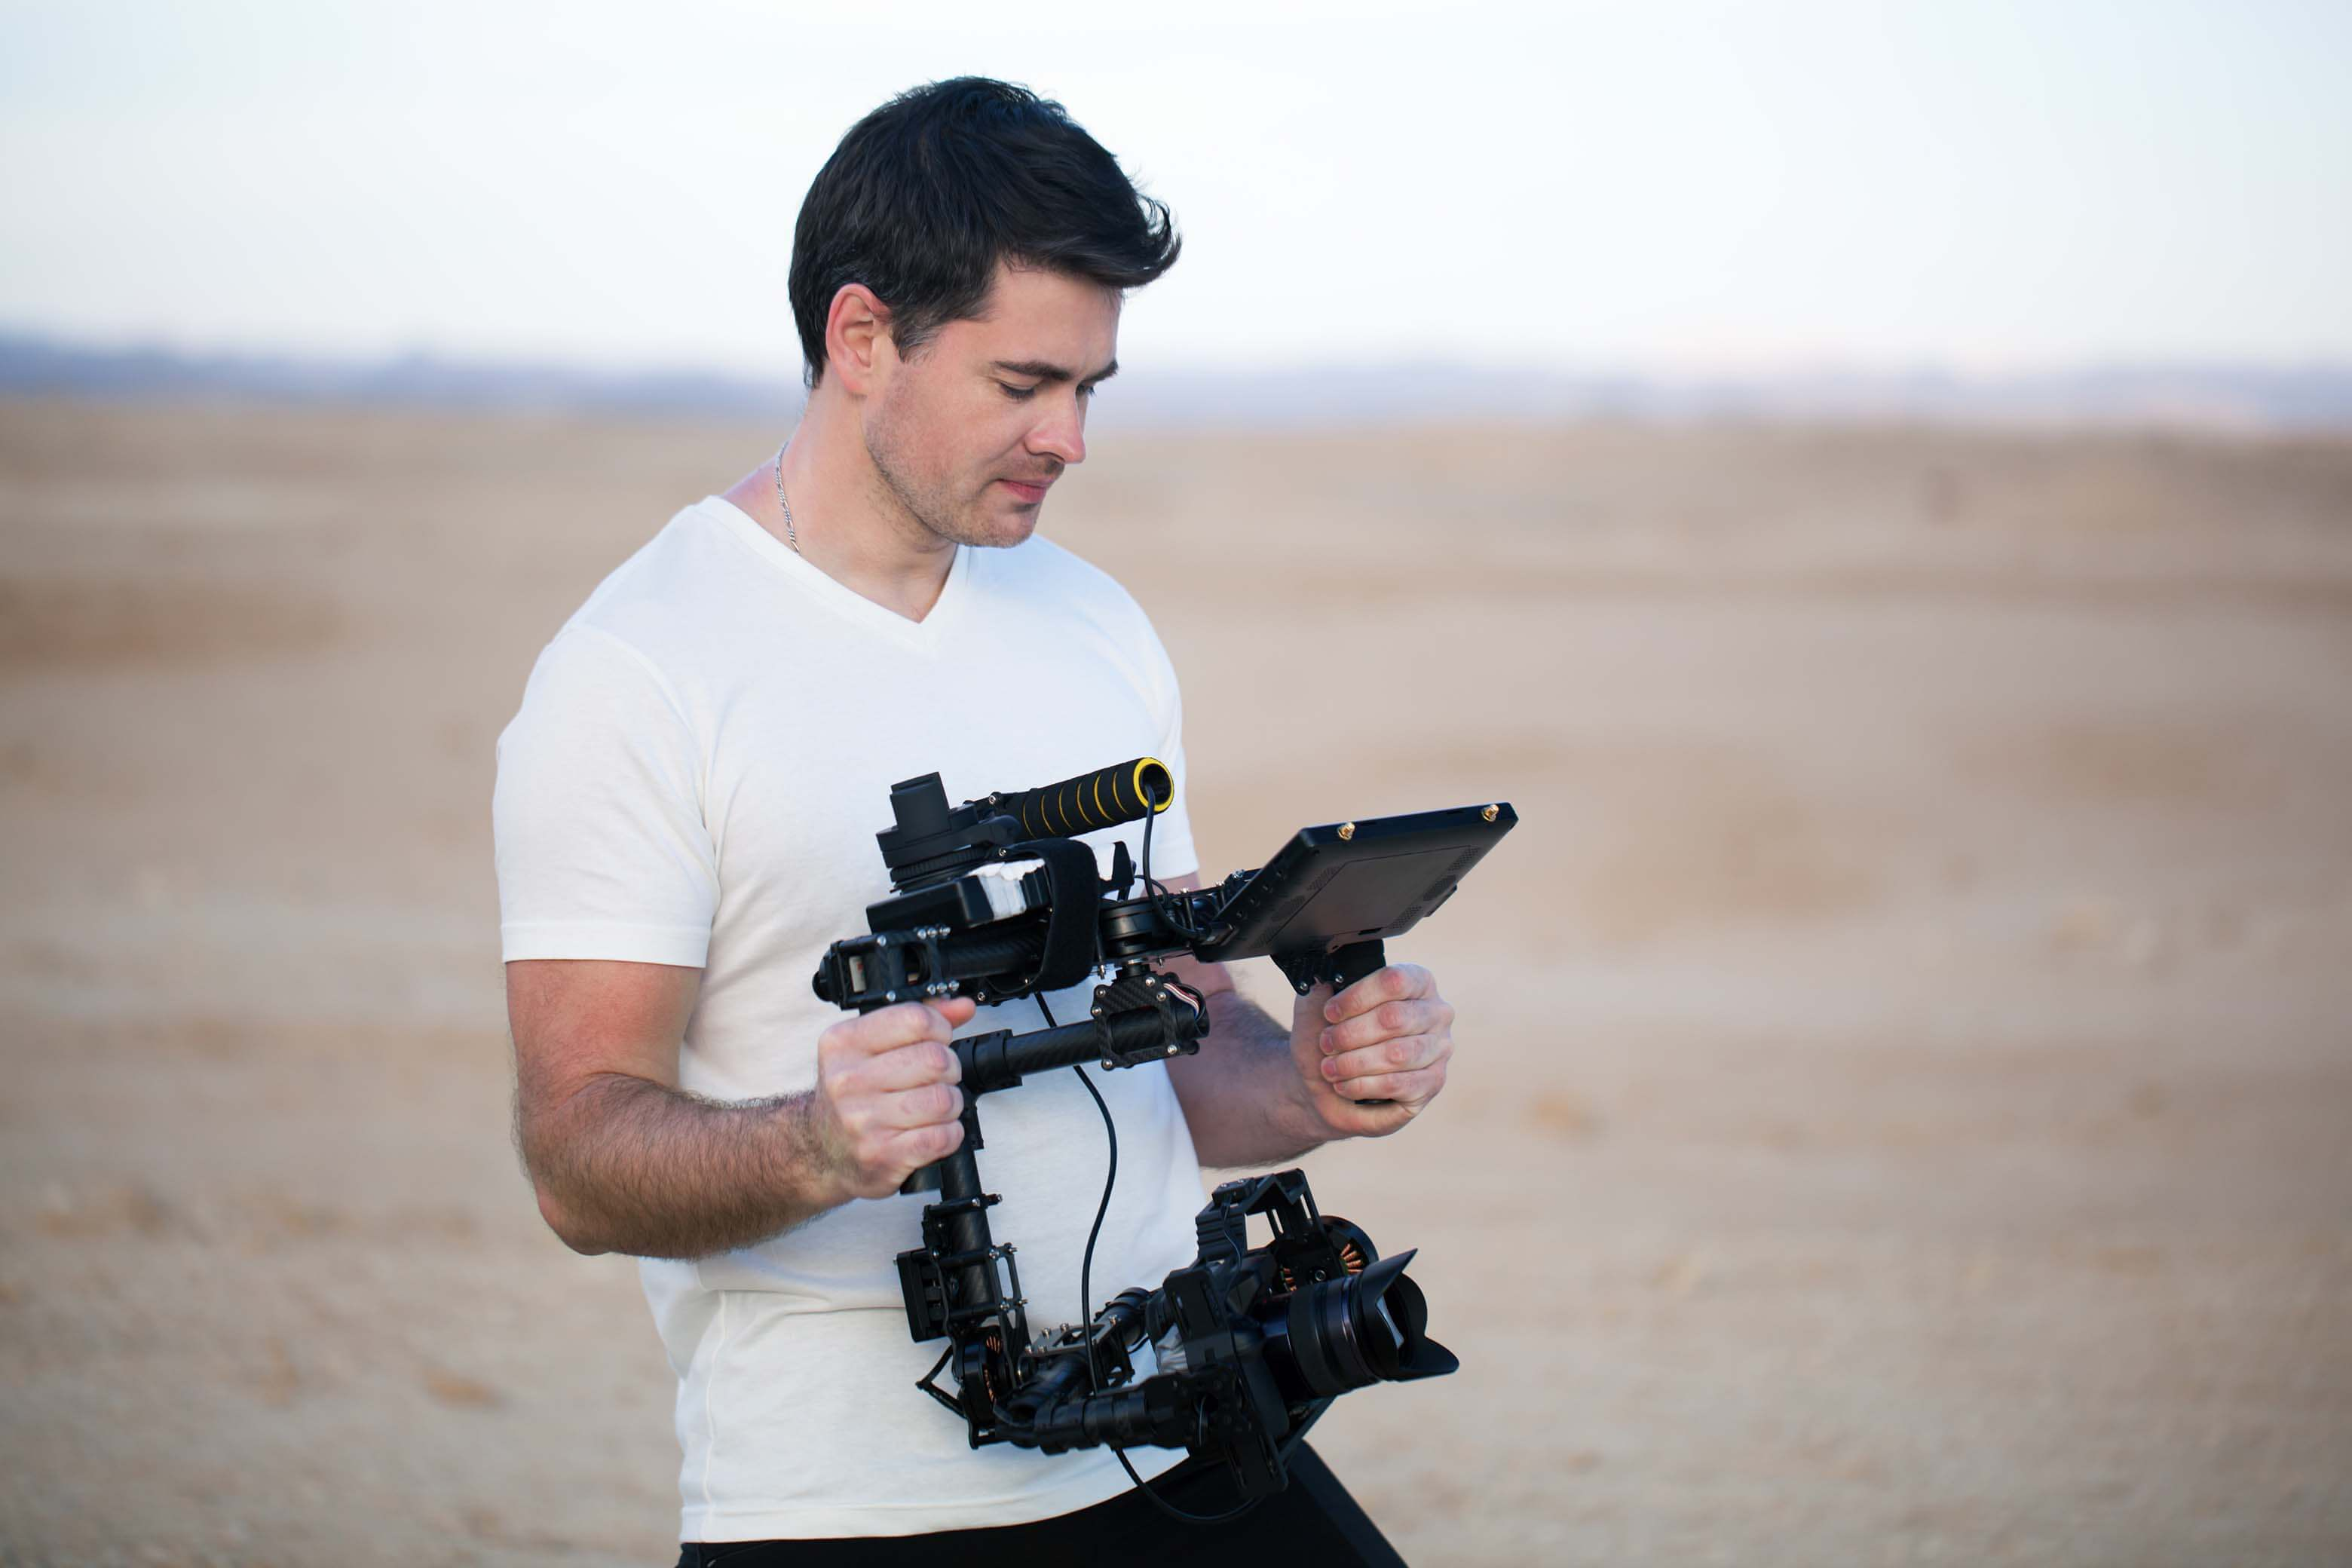 Young videographer shooting on the beach using steadycam. He looking at result on display